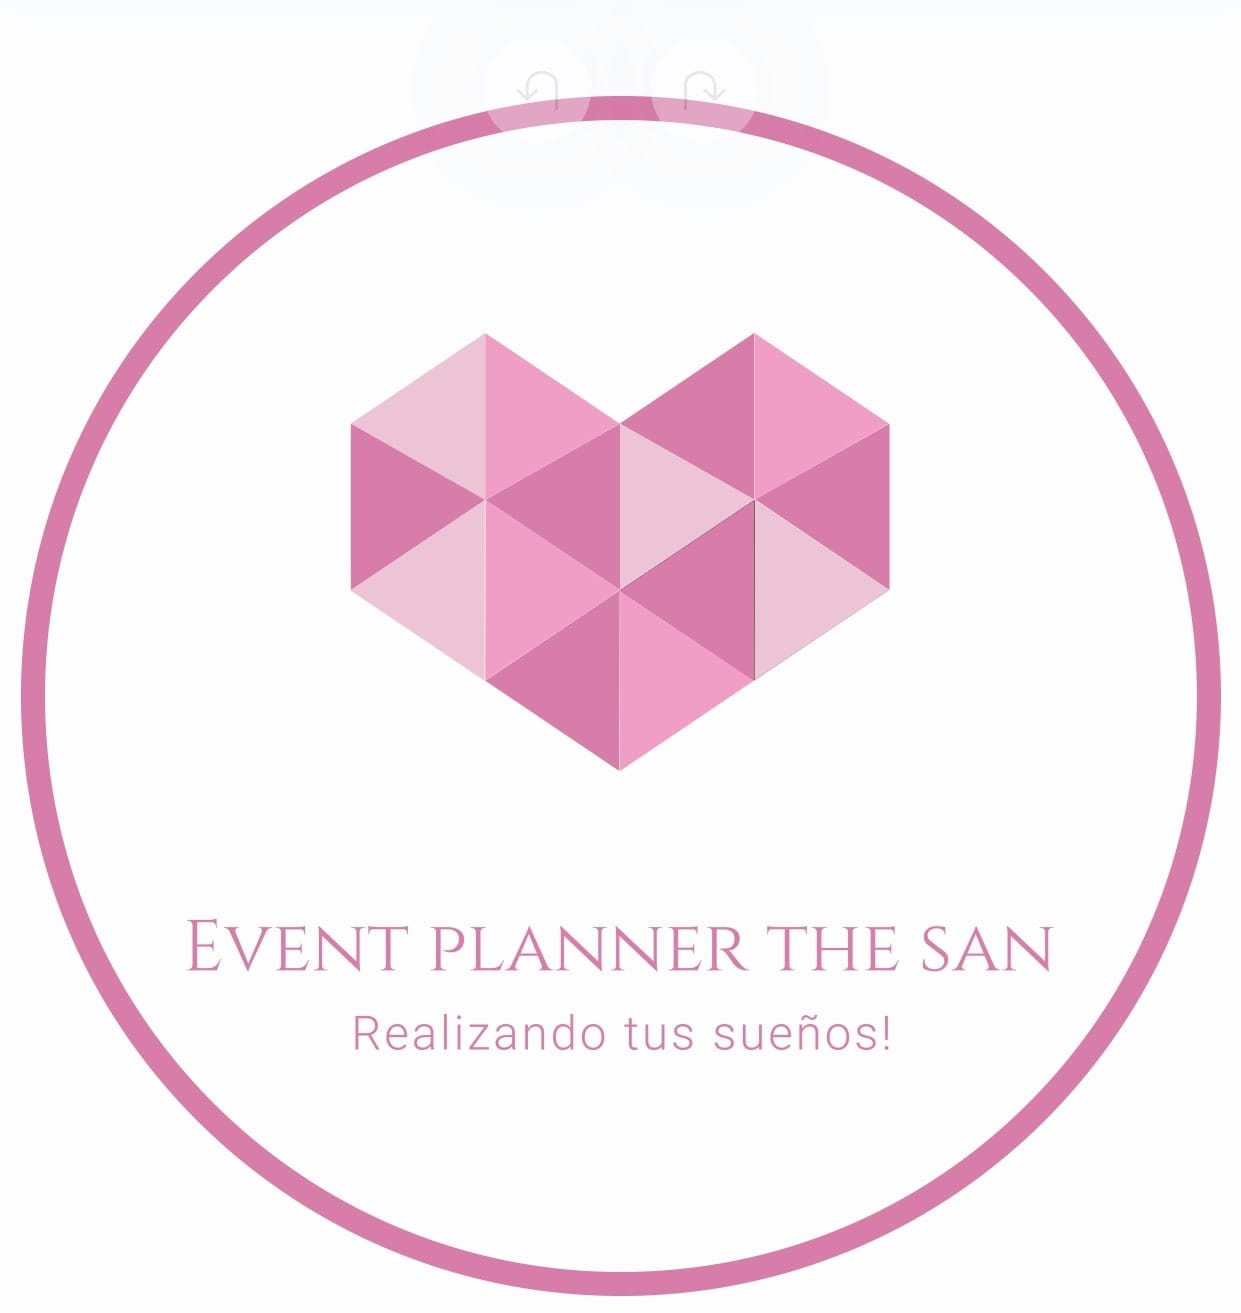 Event Planner Thesan